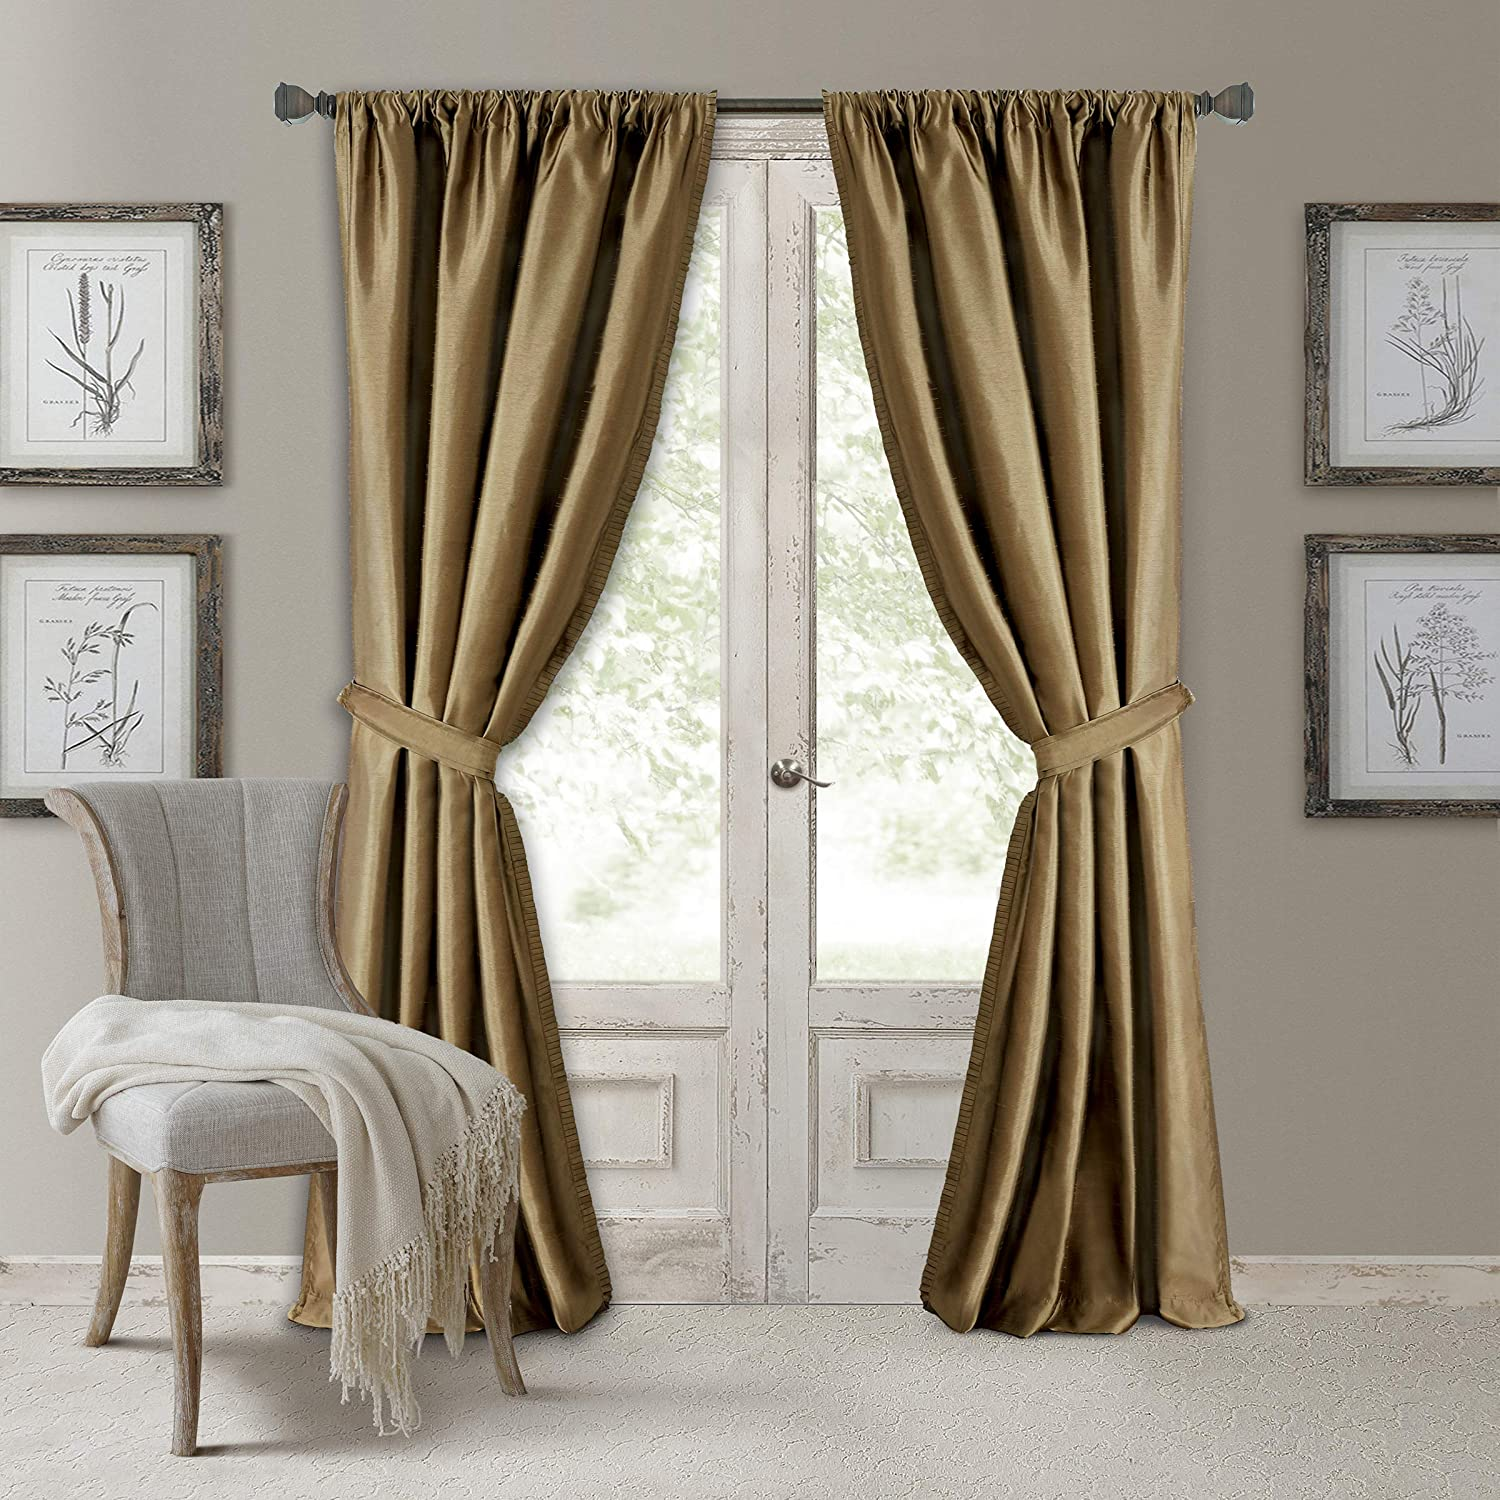 Details about  /Versailles Resin Wood Curtain Drape Holdbacks Ornate Medallion Colonial 7120